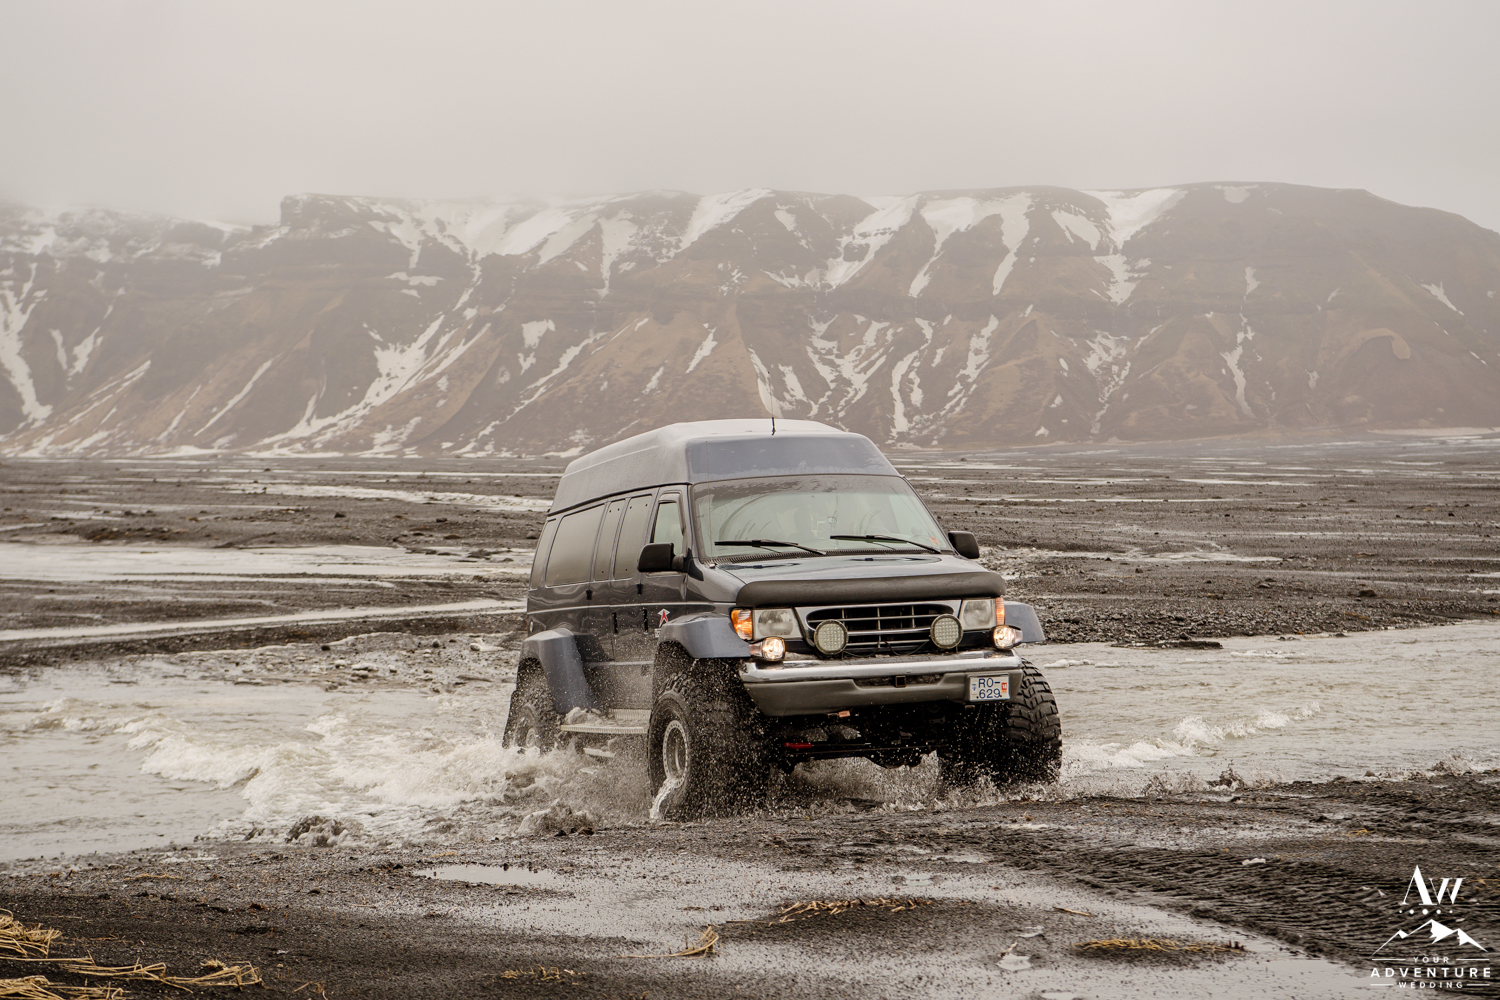 Iceland Wedding Super Jeep Crossing a River